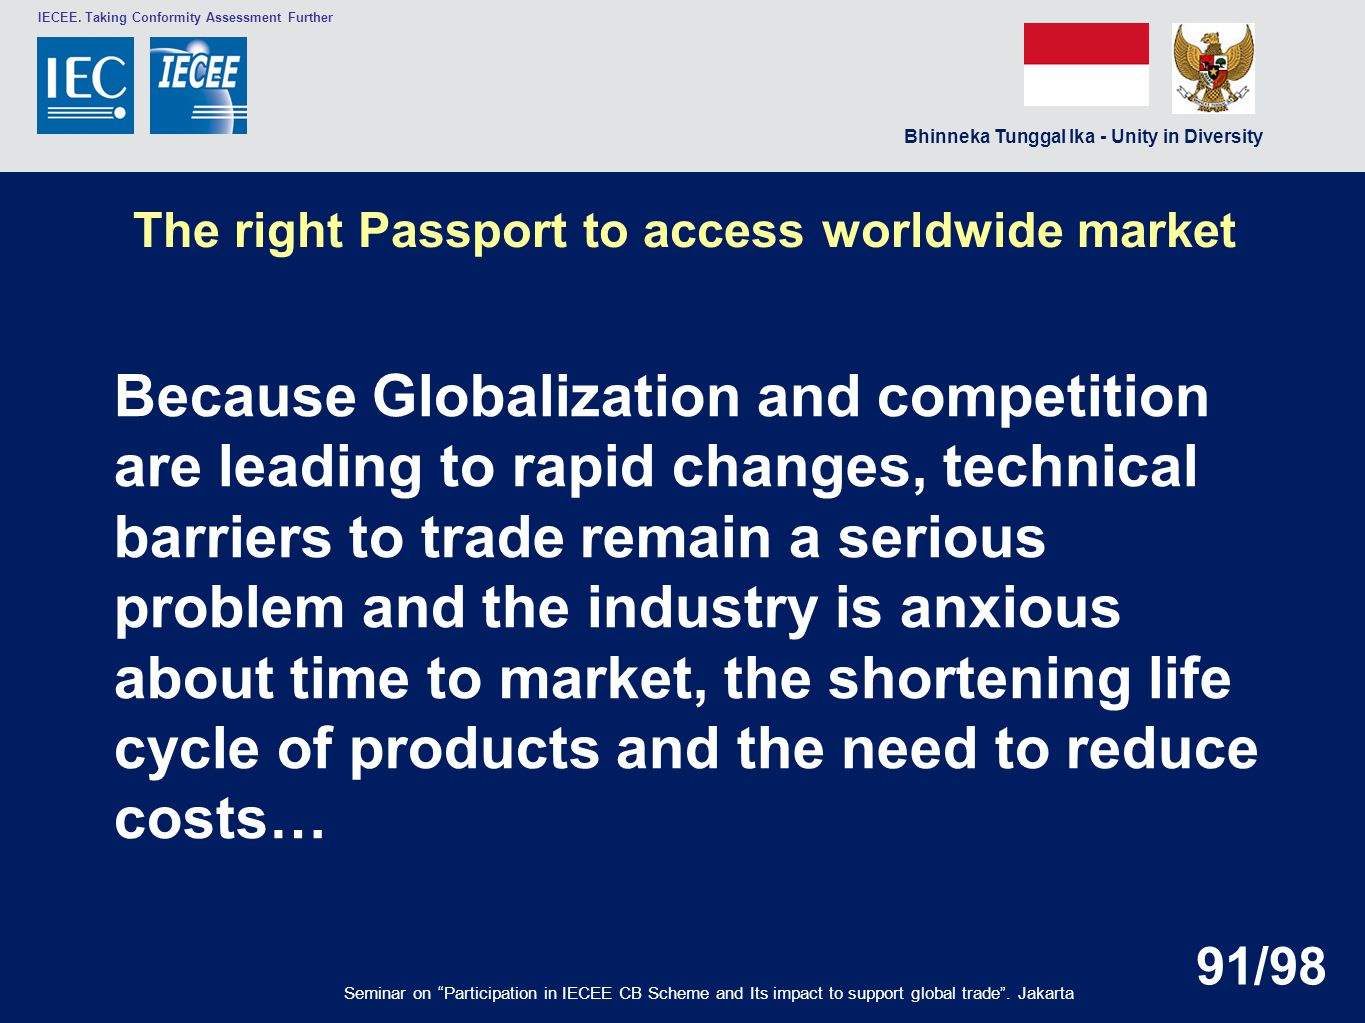 The right Passport to access worldwide market